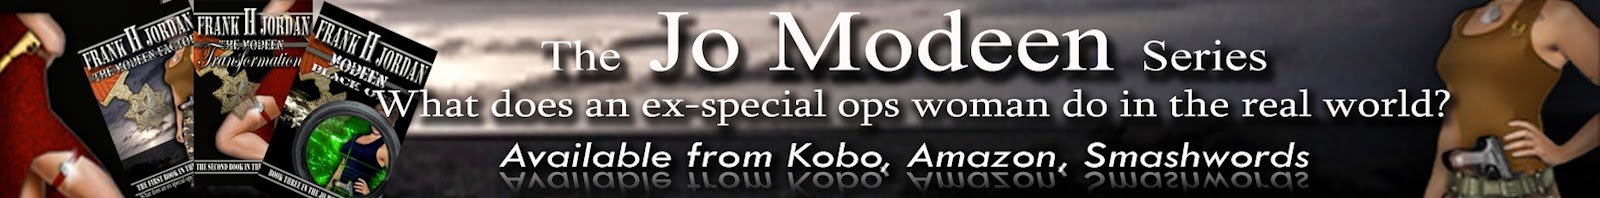 http://store.kobobooks.com/search?Query=Modeen+black+ops